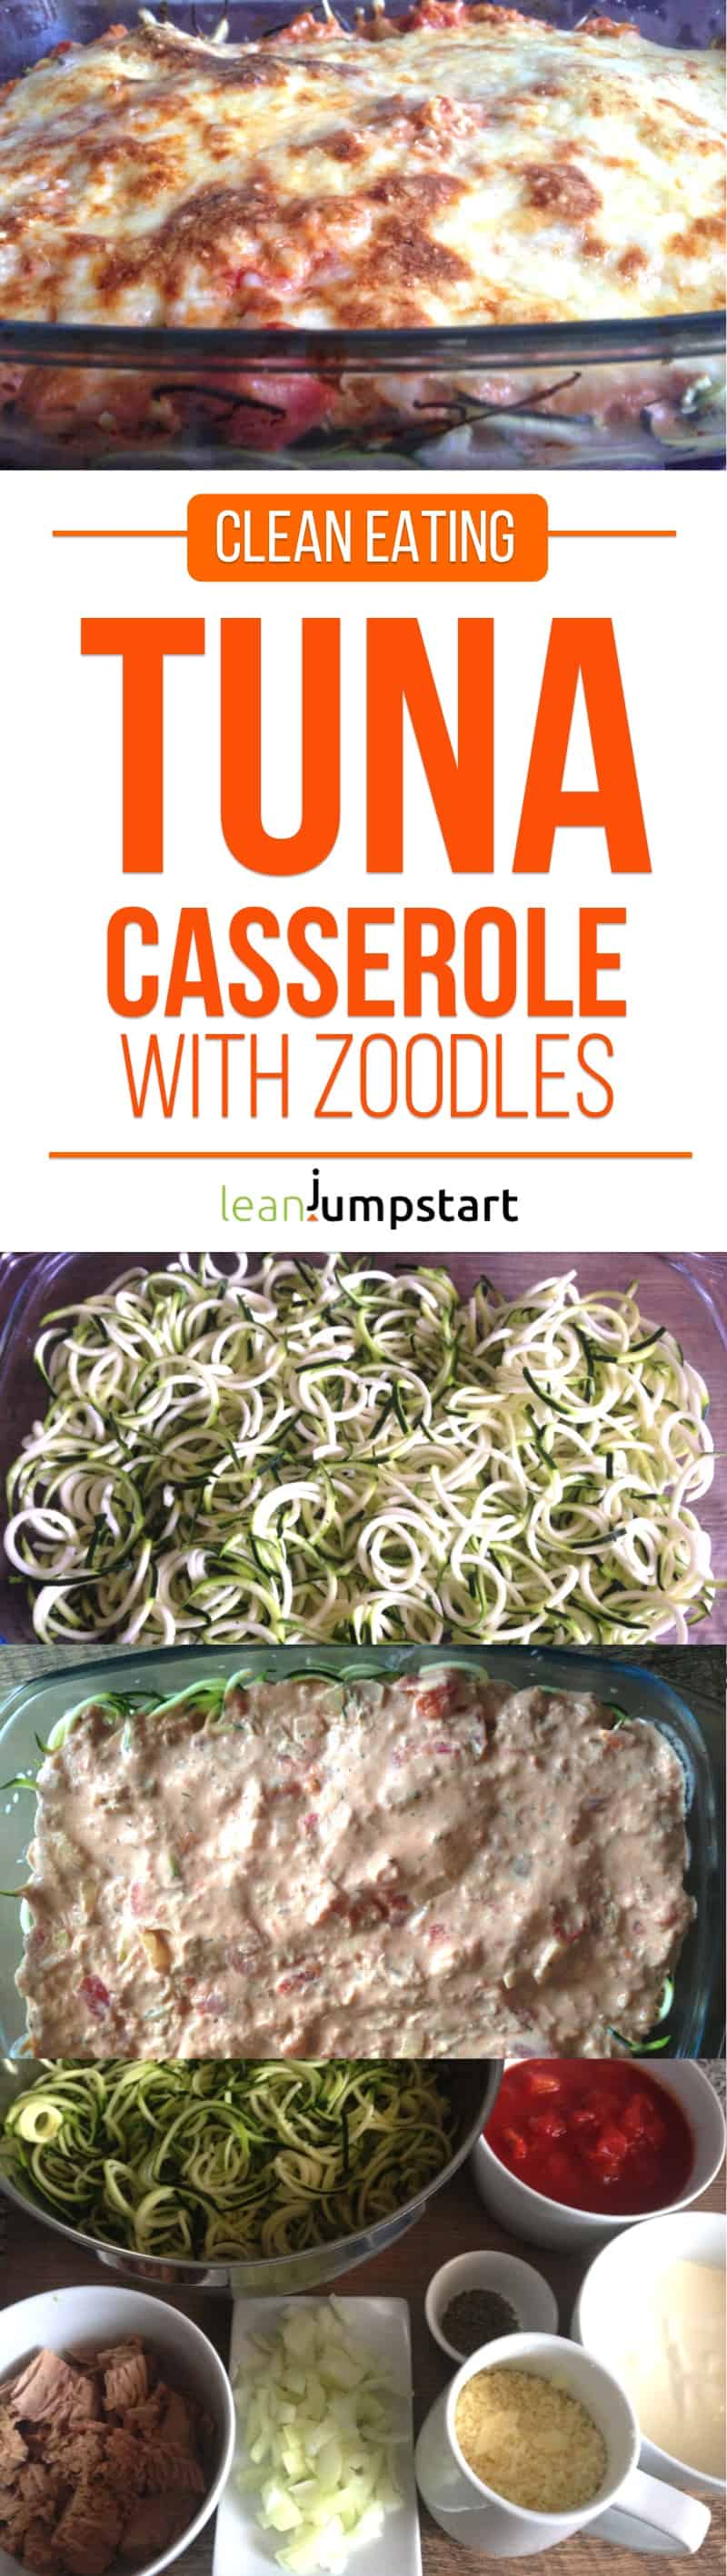 tuna casserole recipe with zoodles: an easy, almost clean bake